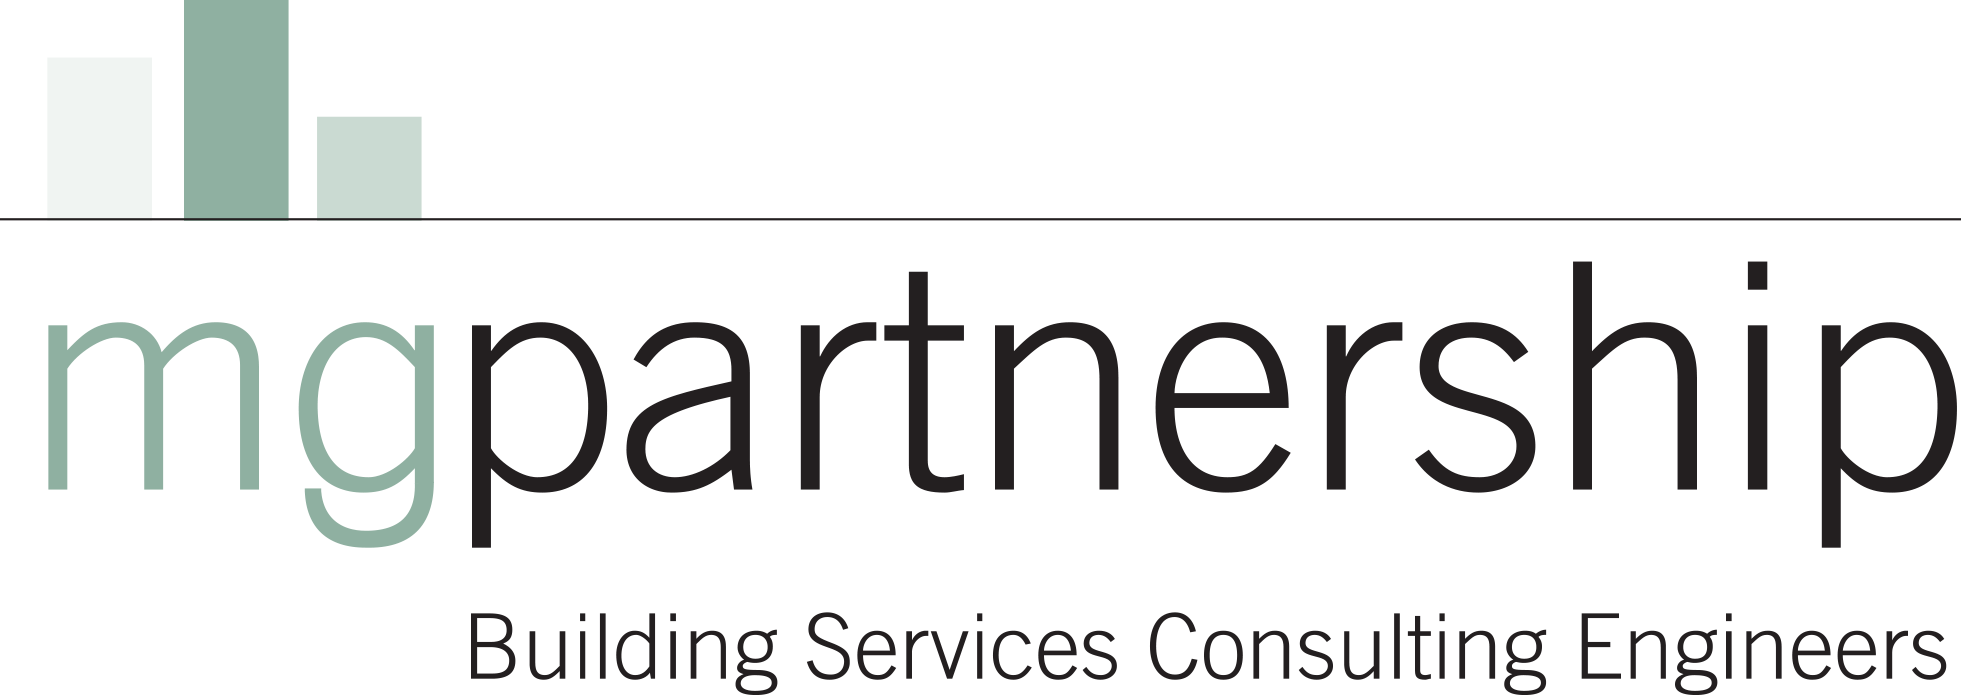 MG Partnership - Building Services Consulting Engineers